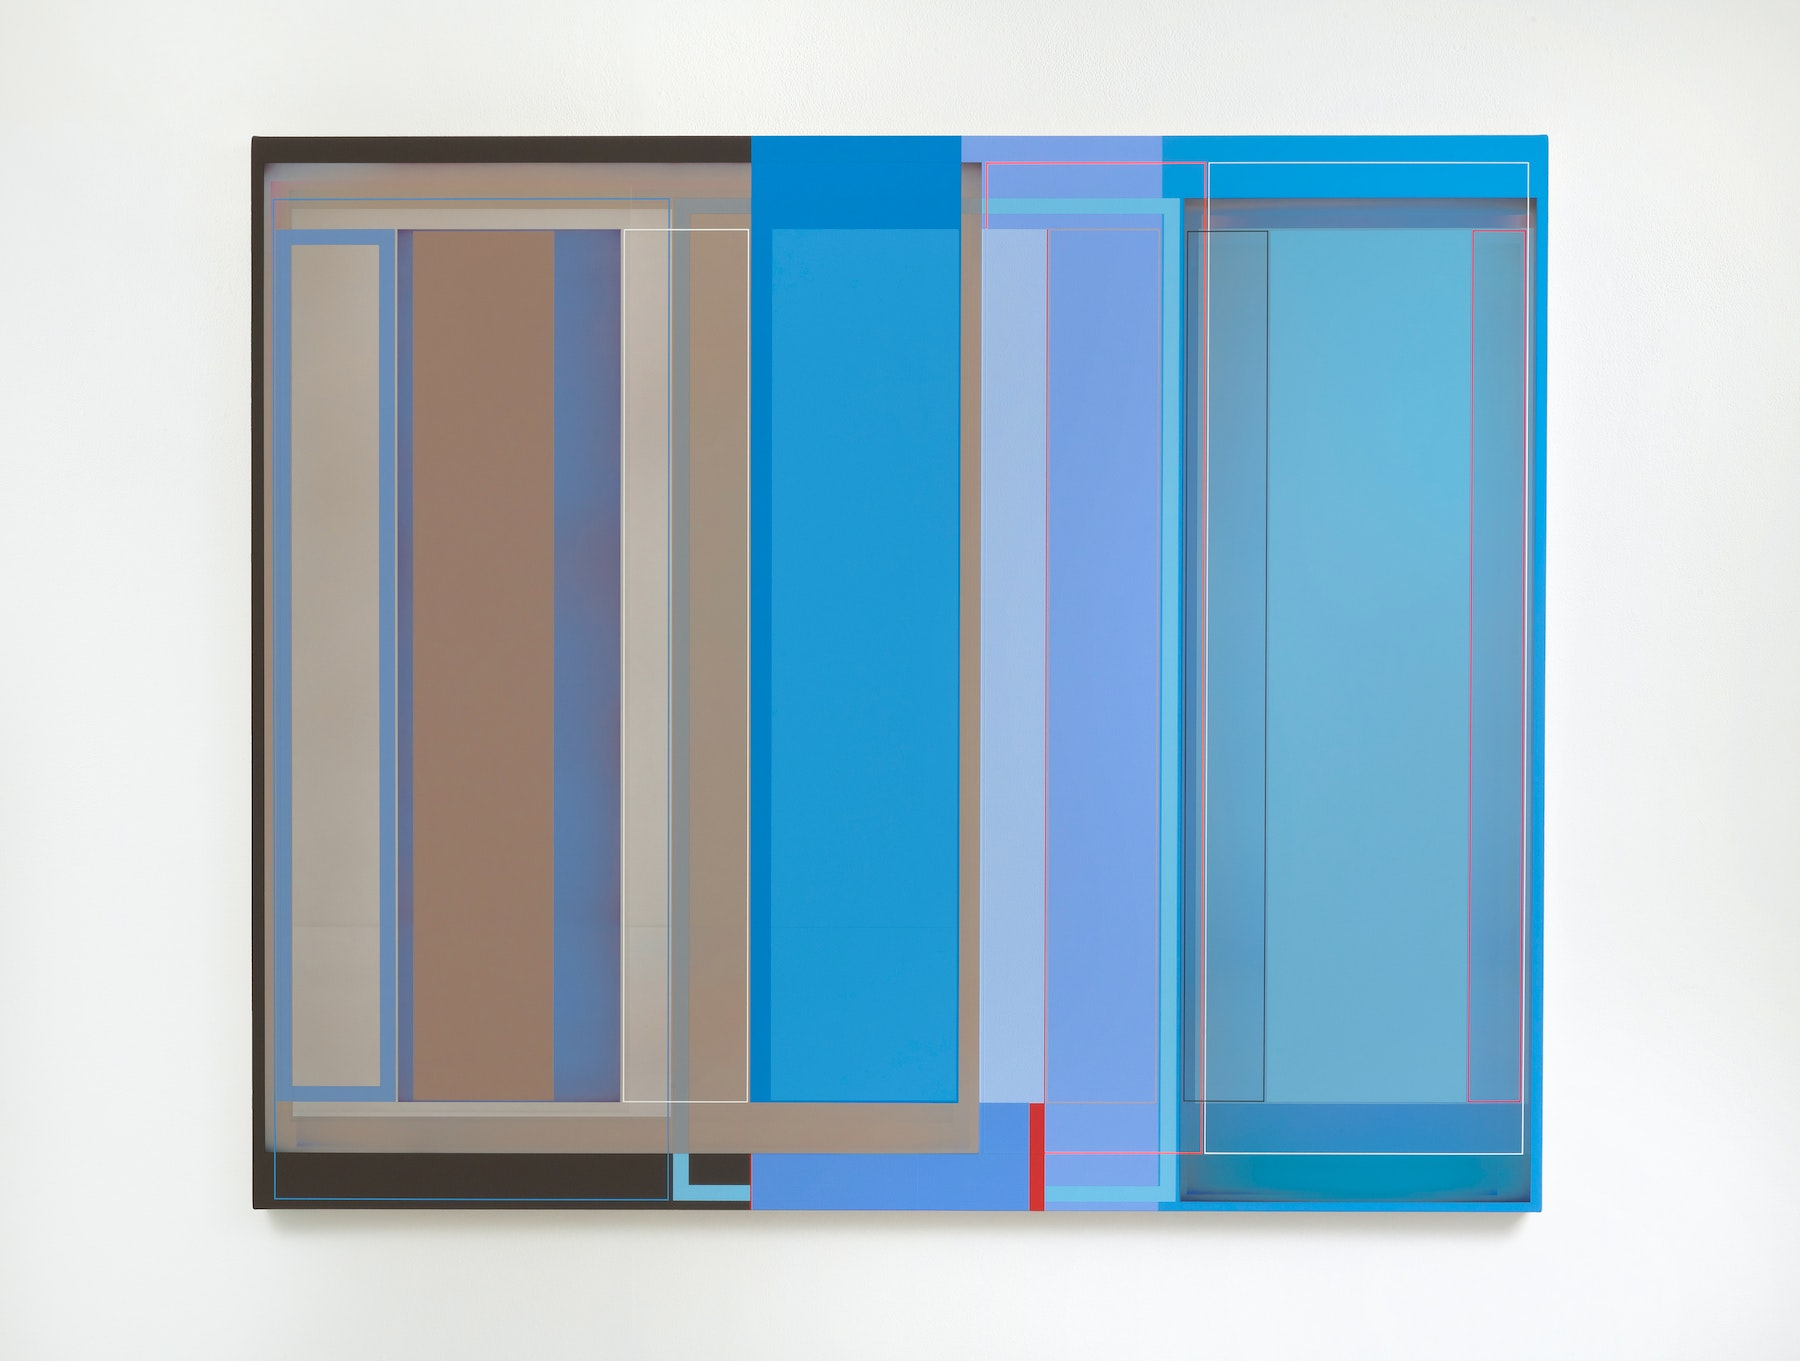 """Patrick Wilson """"Time and Place,"""" 2020 Acrylic on canvas 49 x 59"""" [HxW] (124.46 x 149.86 cm) Inventory #WIL568 Courtesy of the artist and Vielmetter Los Angeles Photo credit: Robert Wedemeyer"""